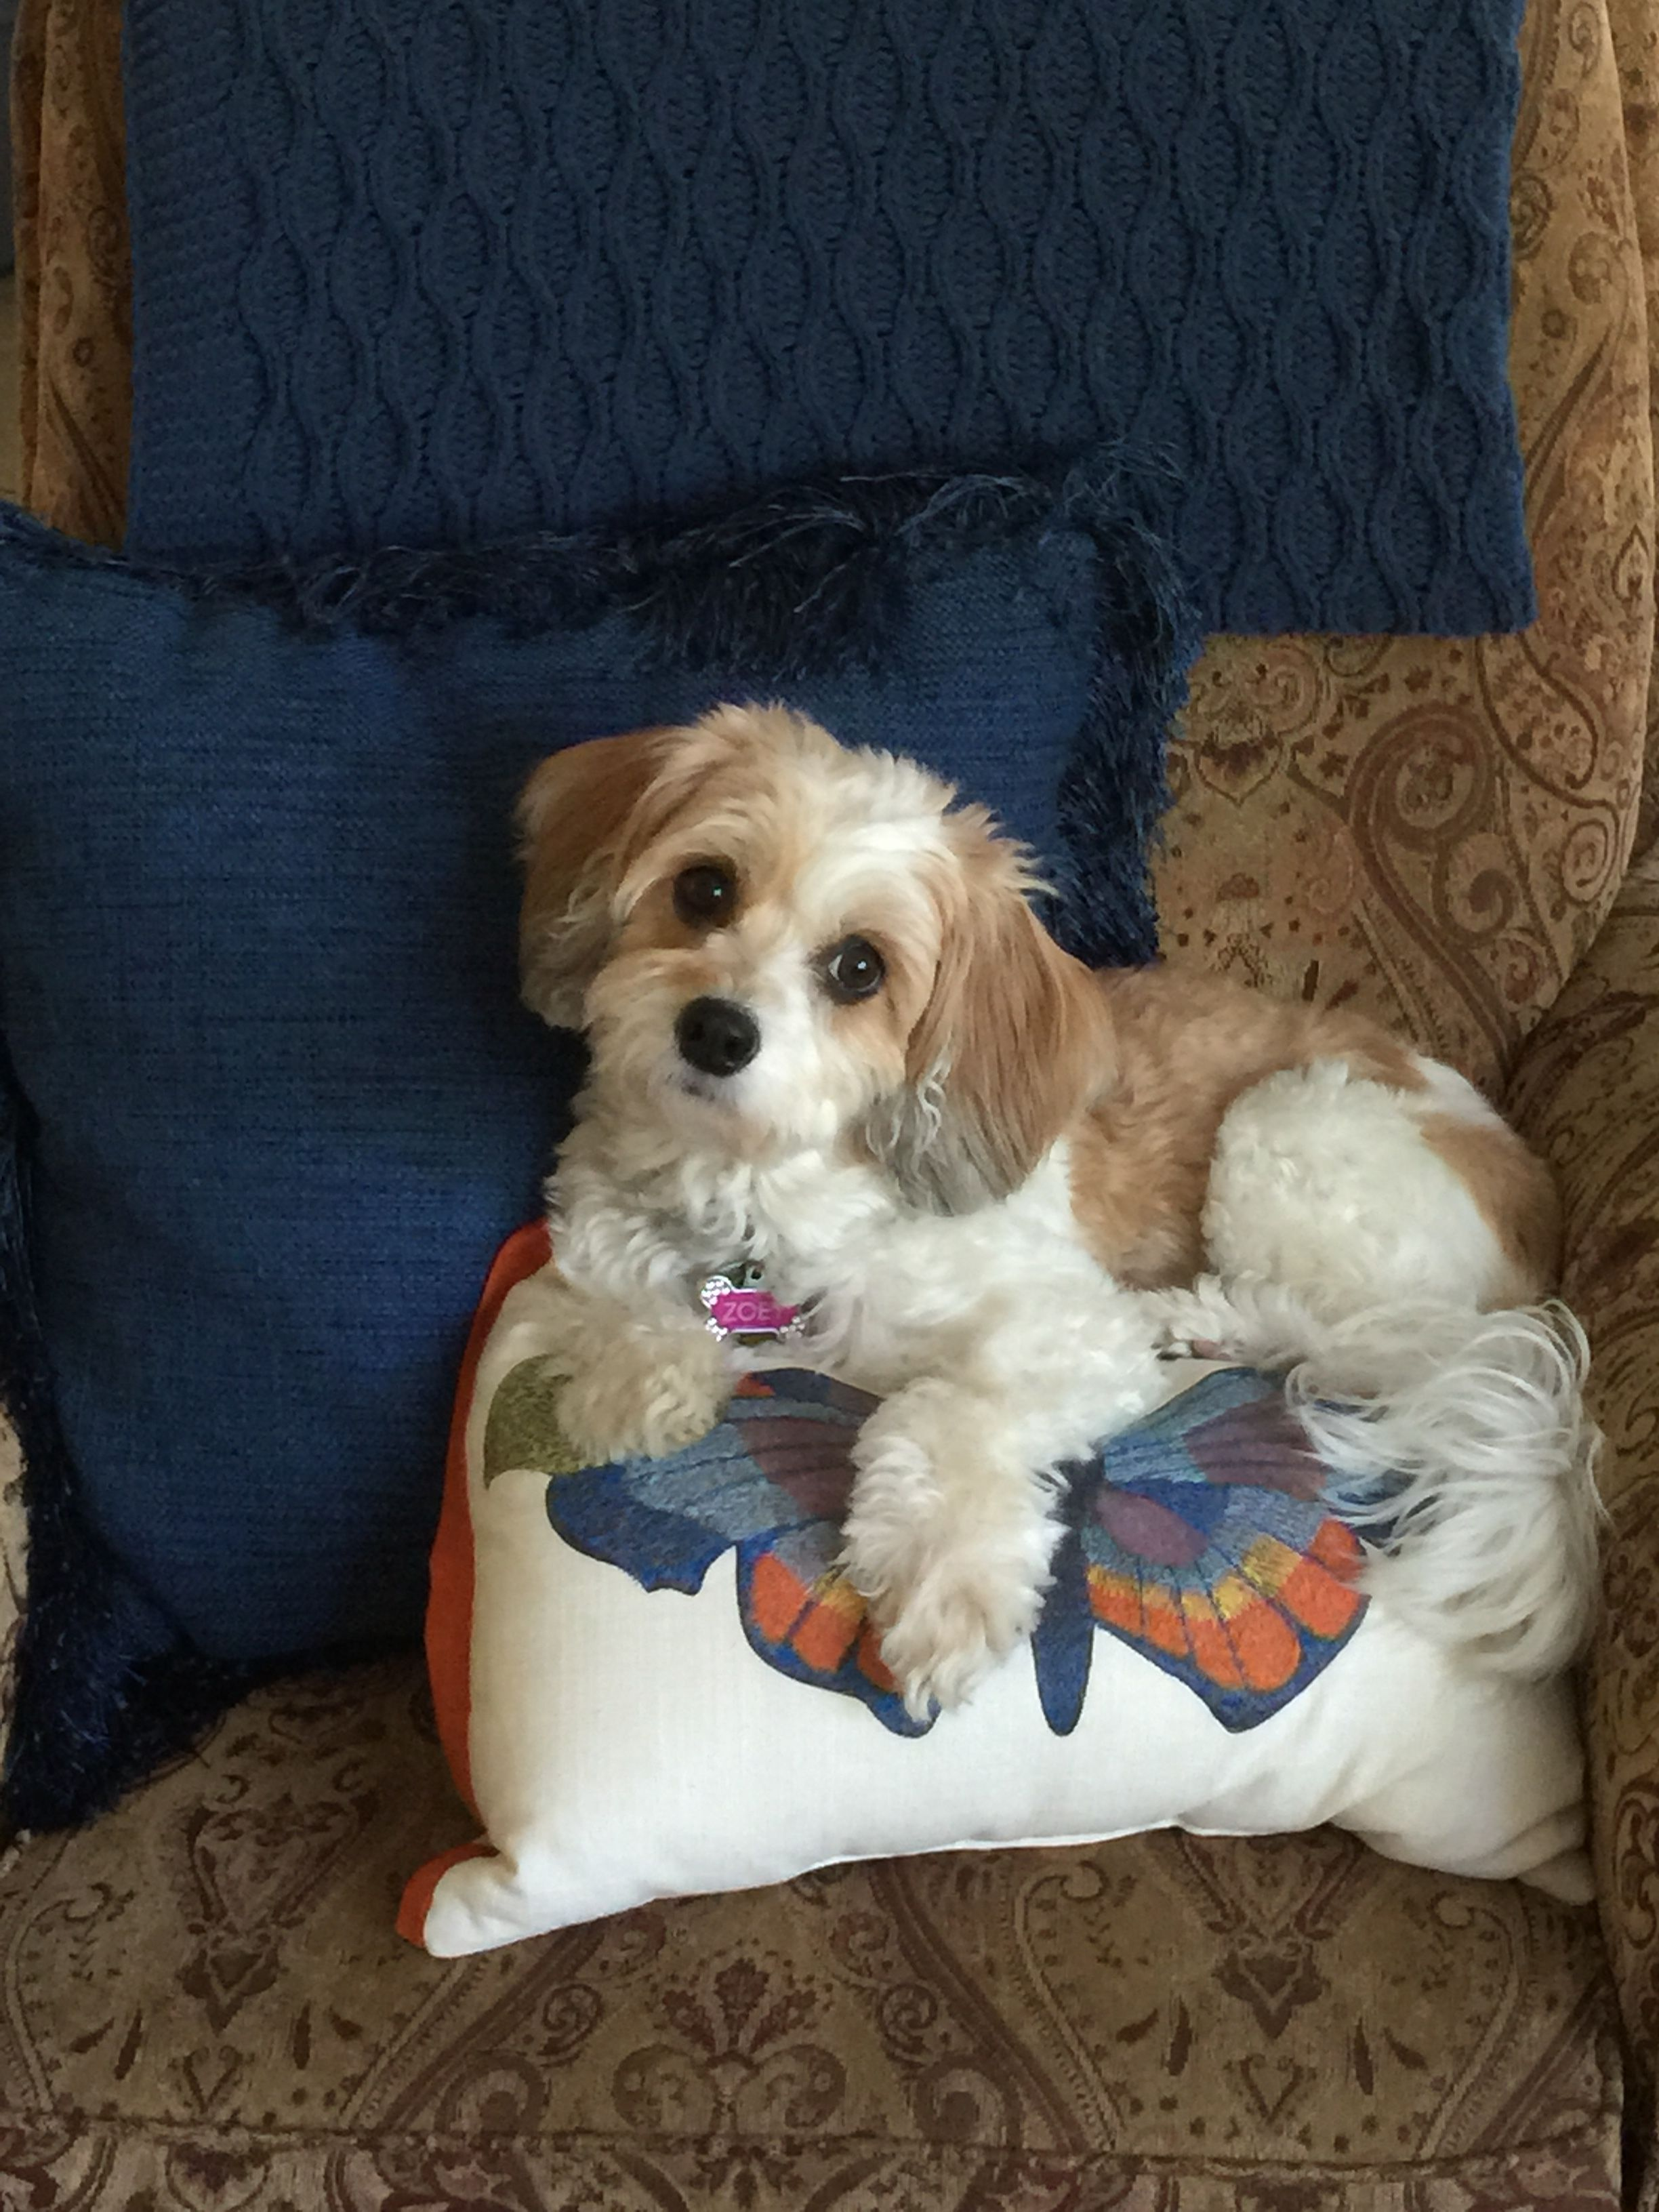 My beautiful Cavachon, Zoey. She brings me so much joy and